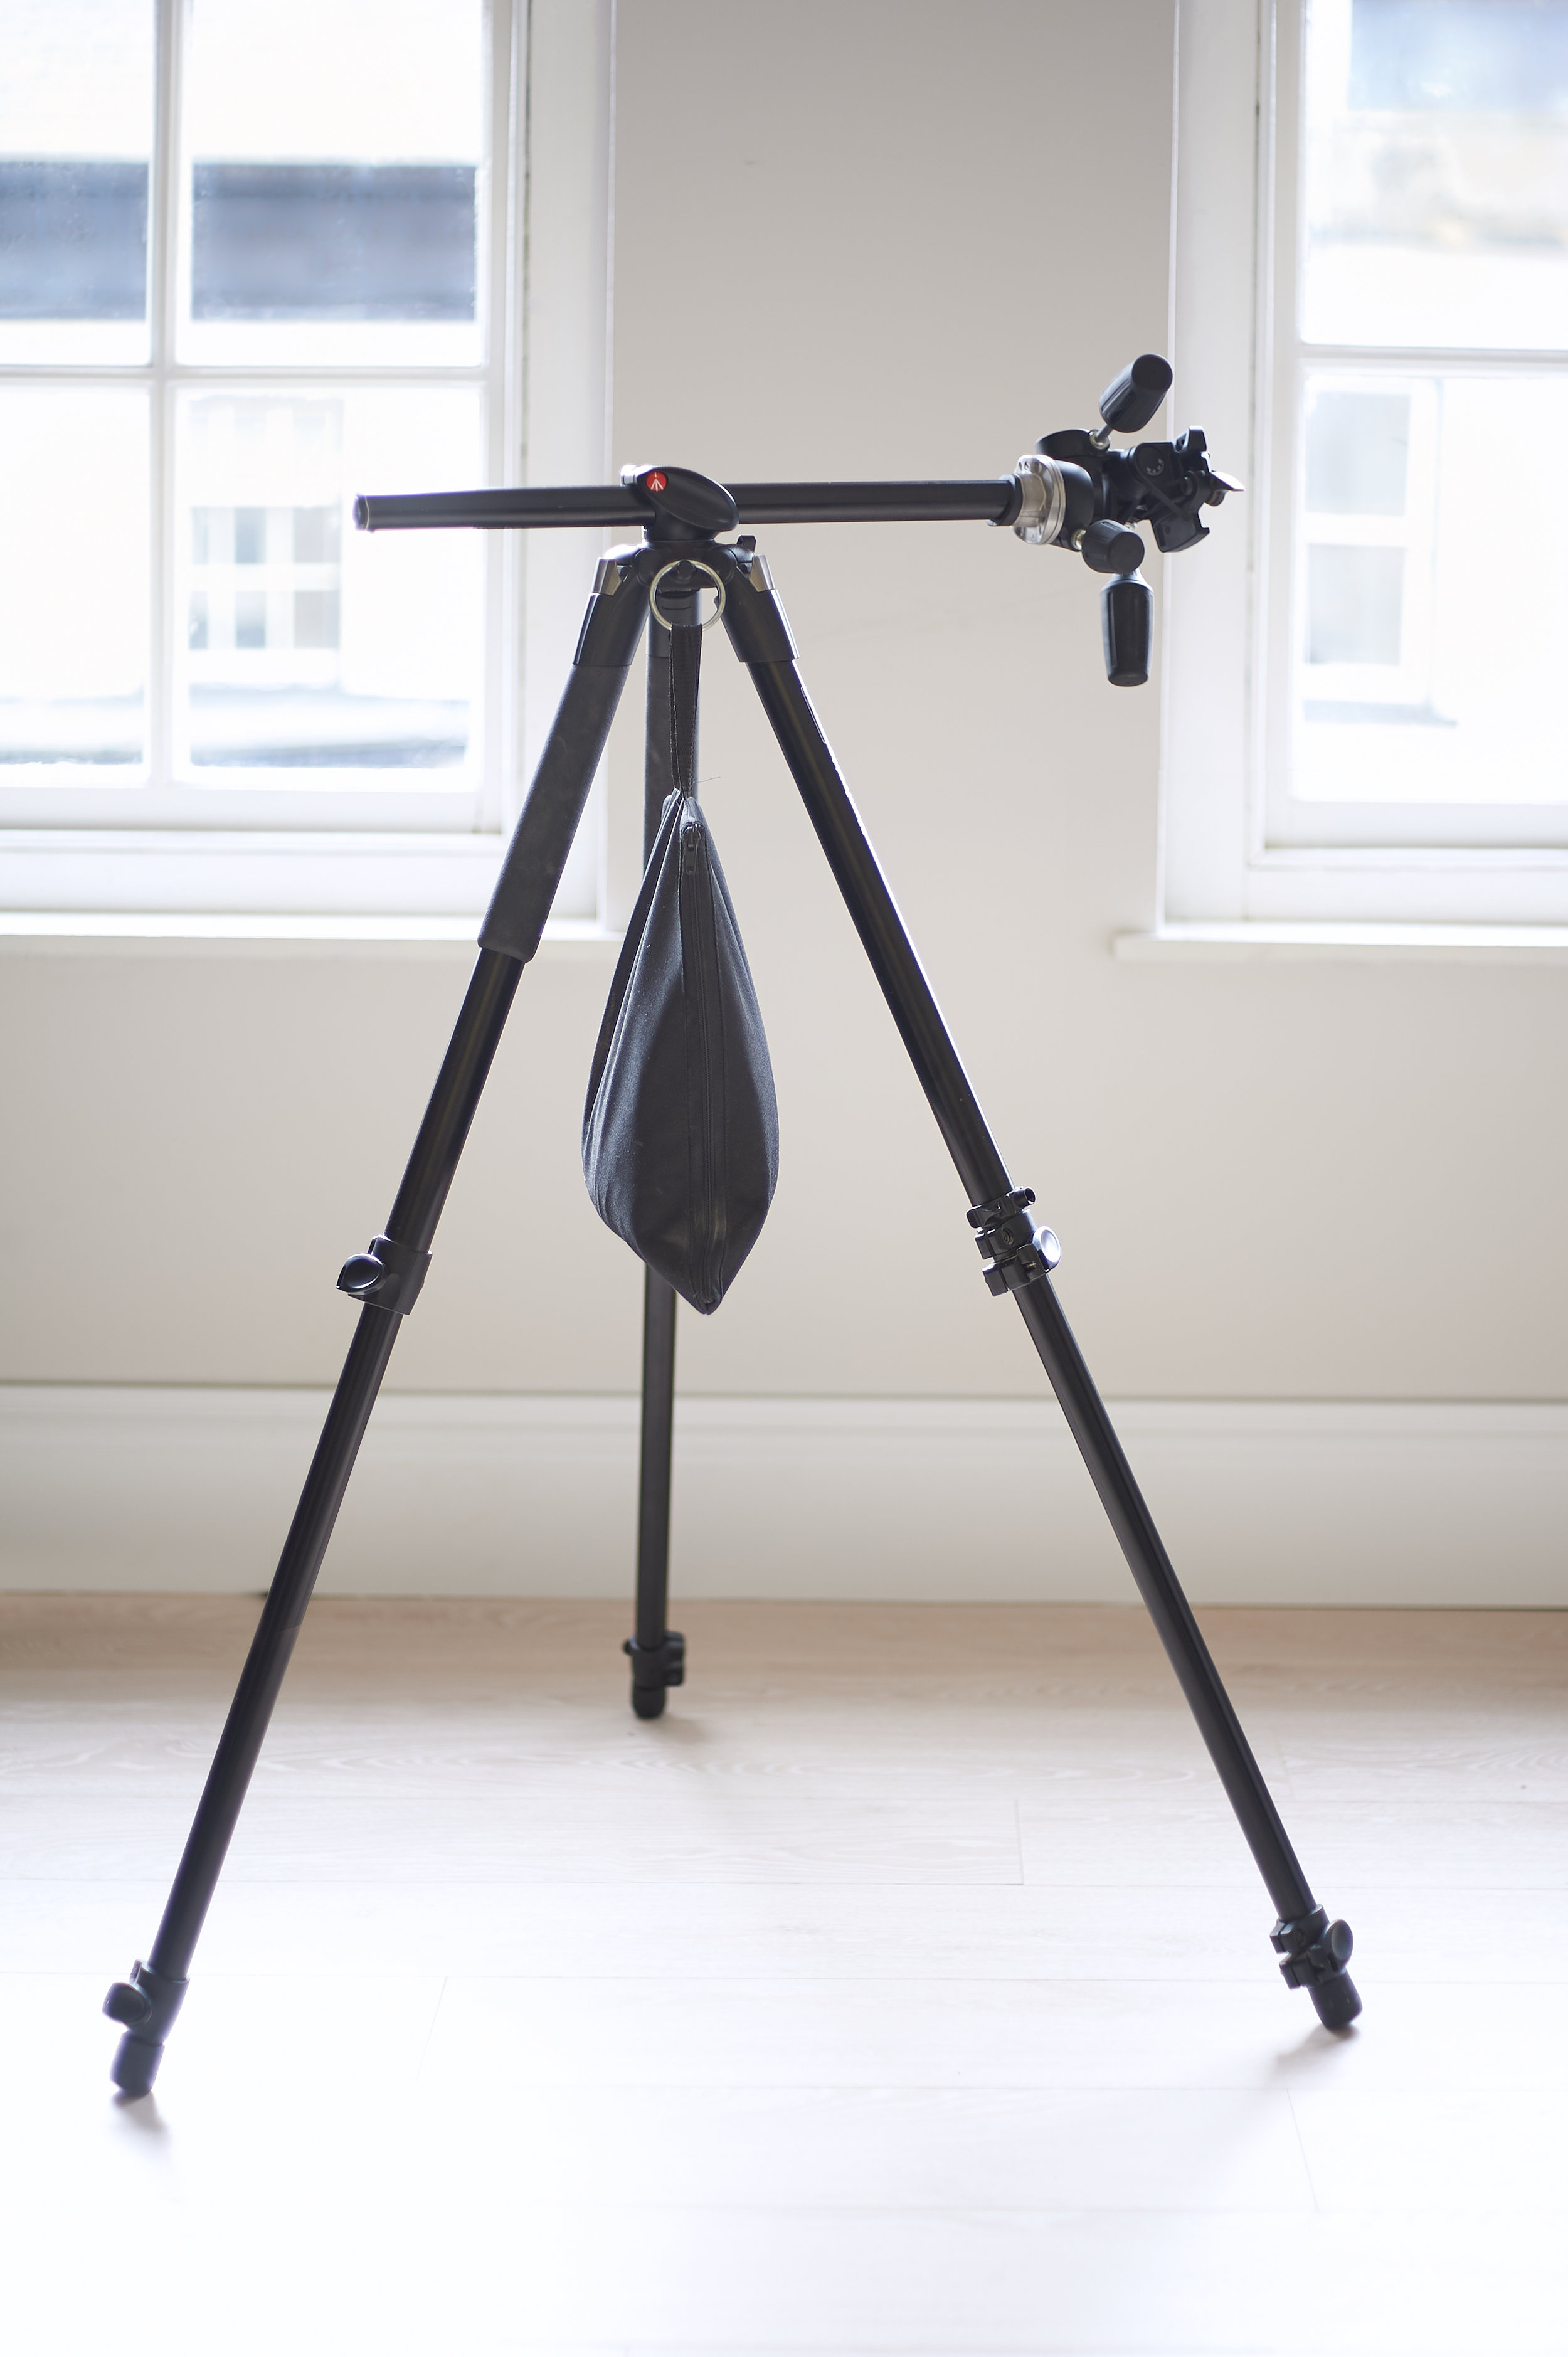 My own Manfrotto Tripod, shown with  horizontal central column, and a  sandbag attached for additional stability.